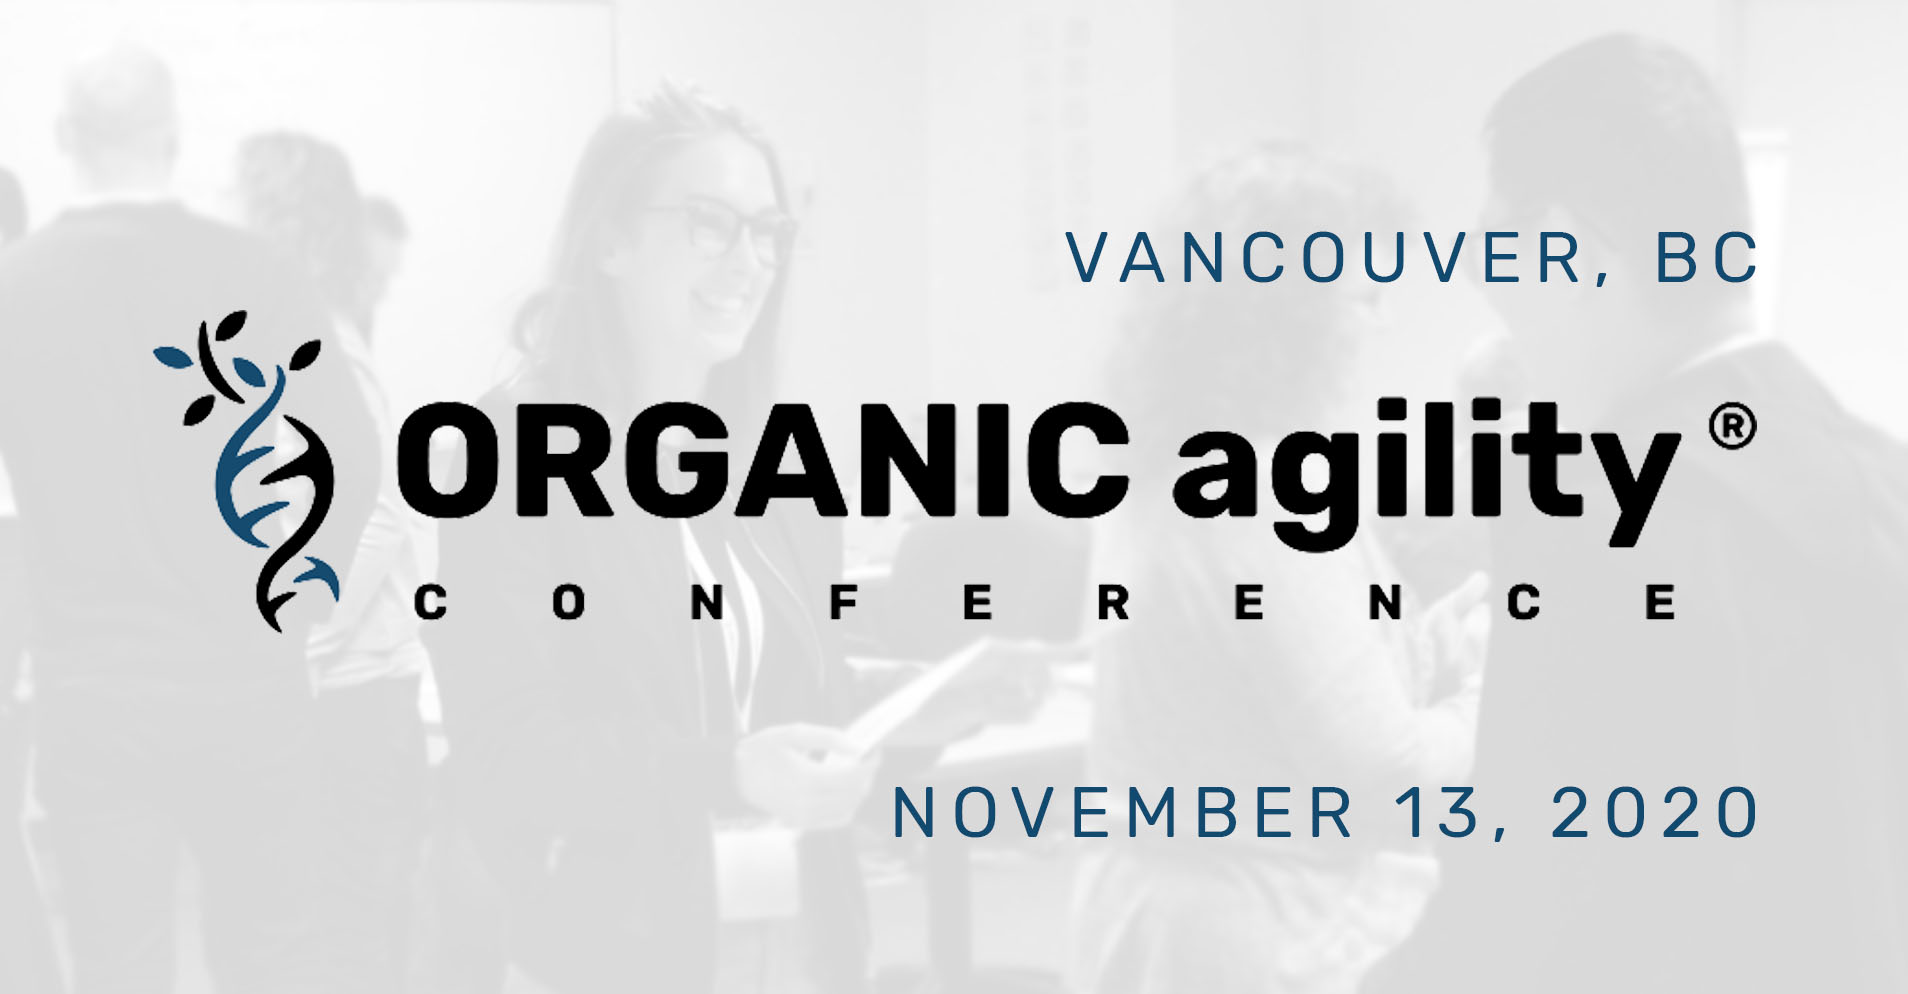 ORGANIC agility conference 2020